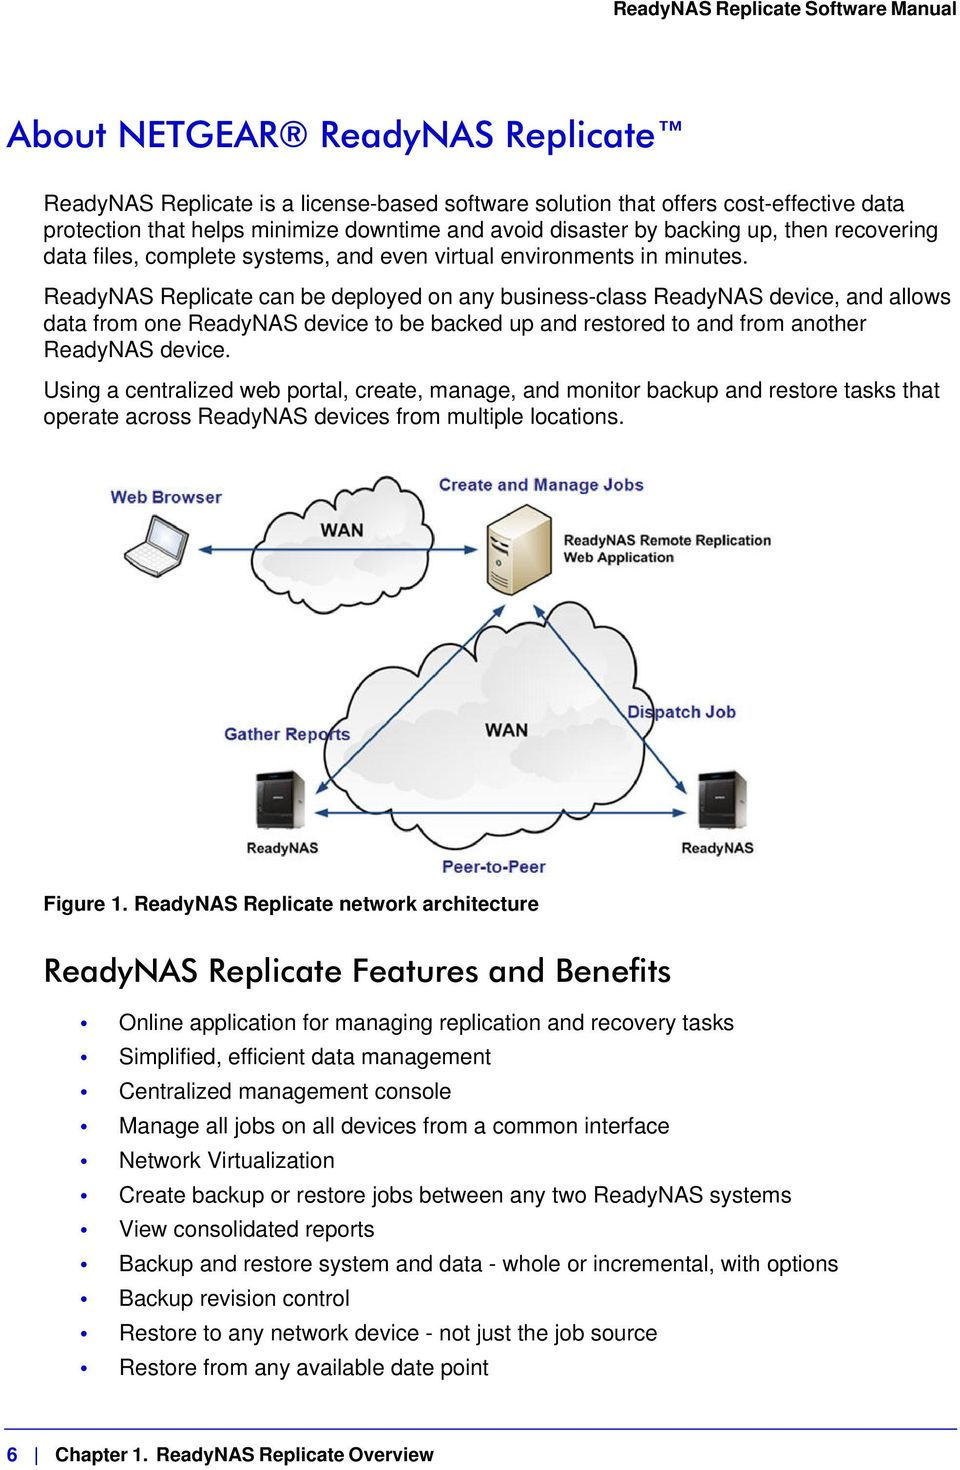 ReadyNAS Replicate can be deployed on any business-class ReadyNAS device, and allows data from one ReadyNAS device to be backed up and restored to and from another ReadyNAS device.